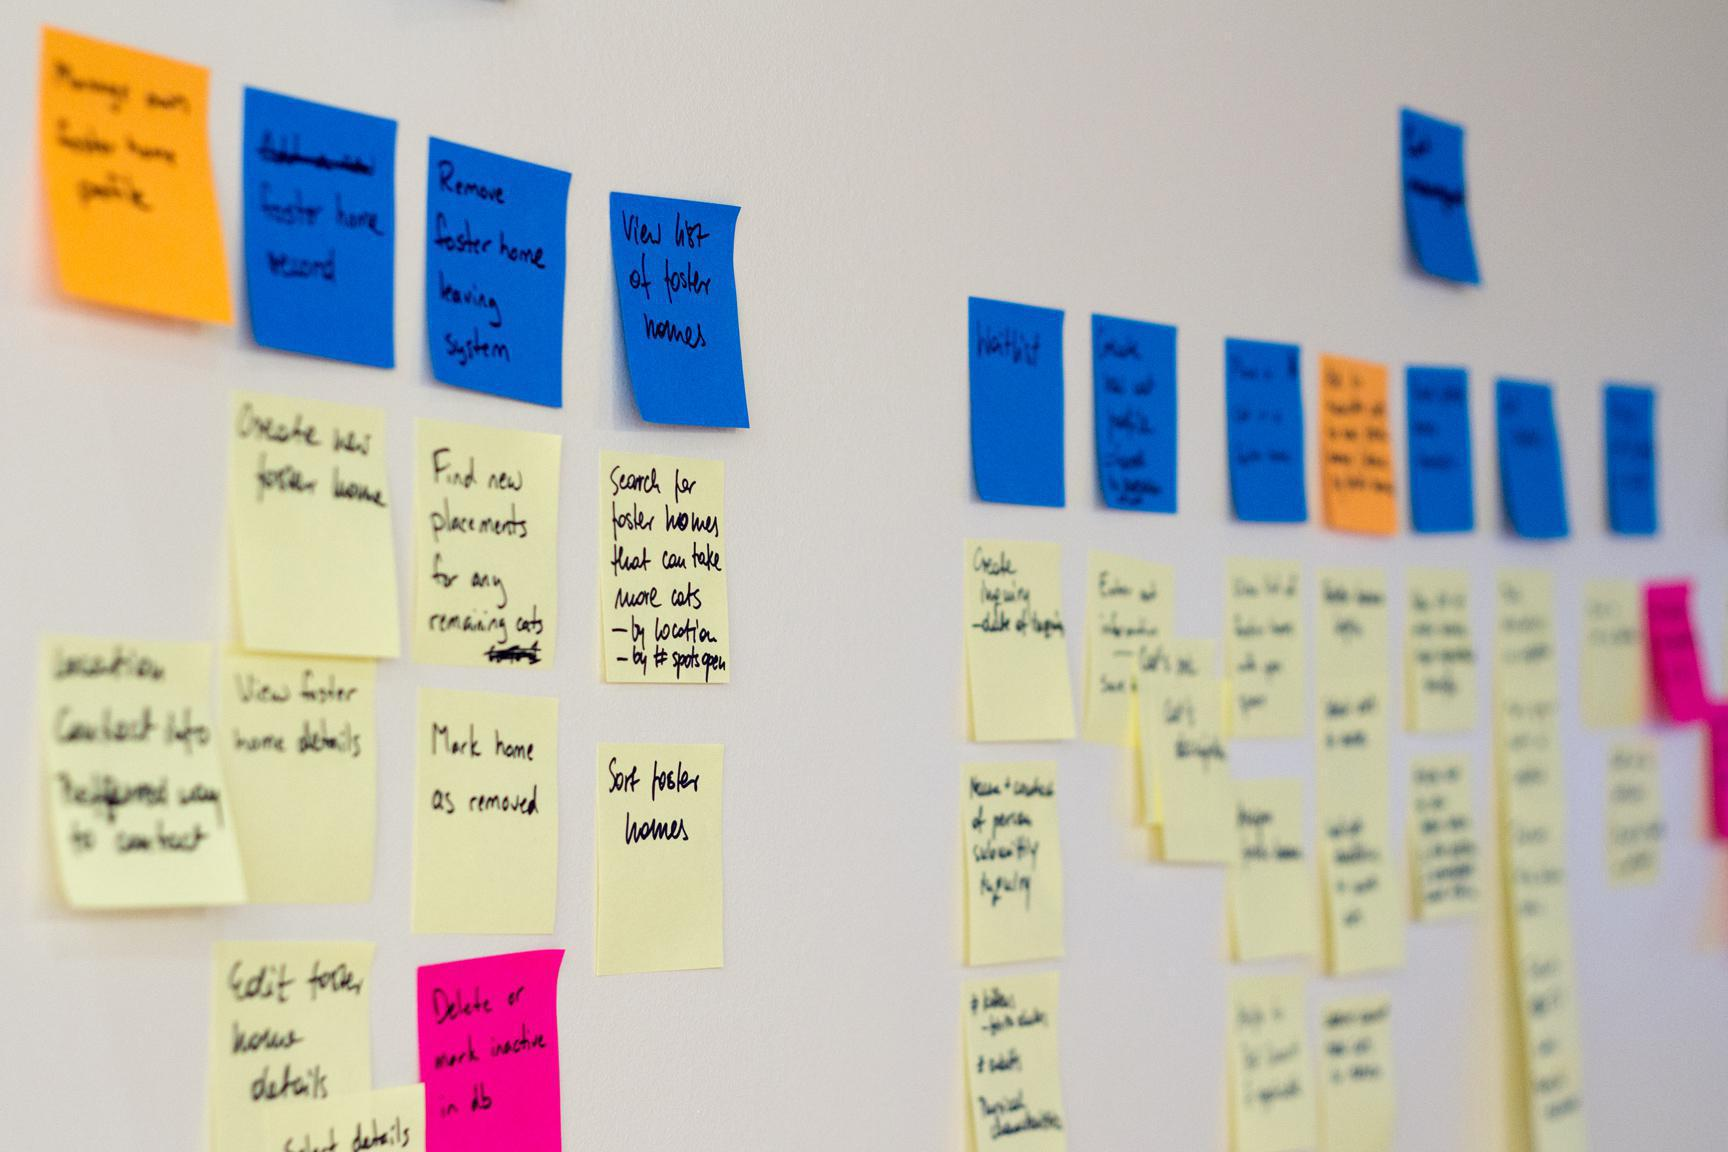 Mapping out the user journey as part of product discovery.